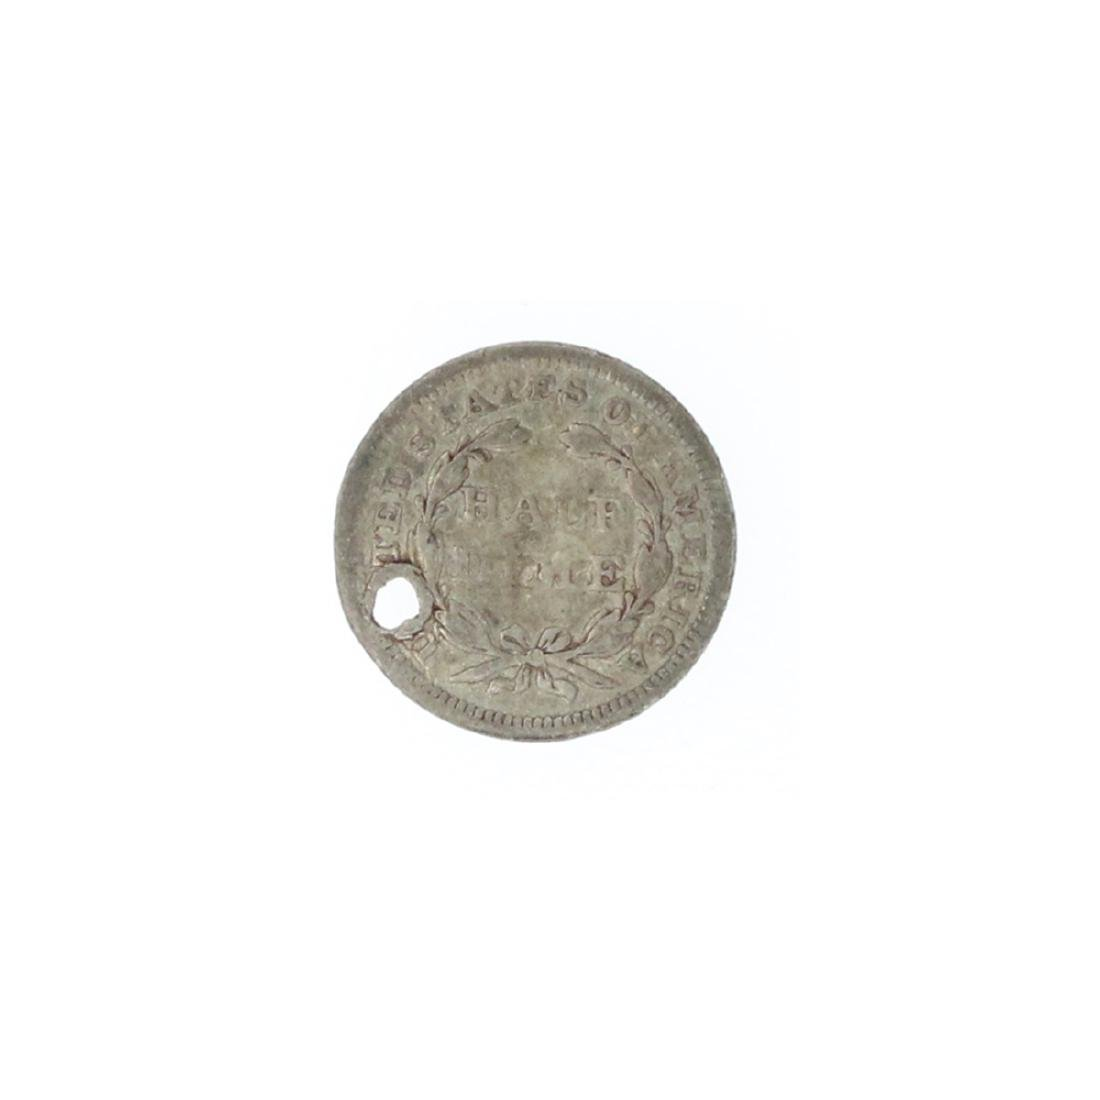 1856 Liberty Seated Half Dime Coin - 2